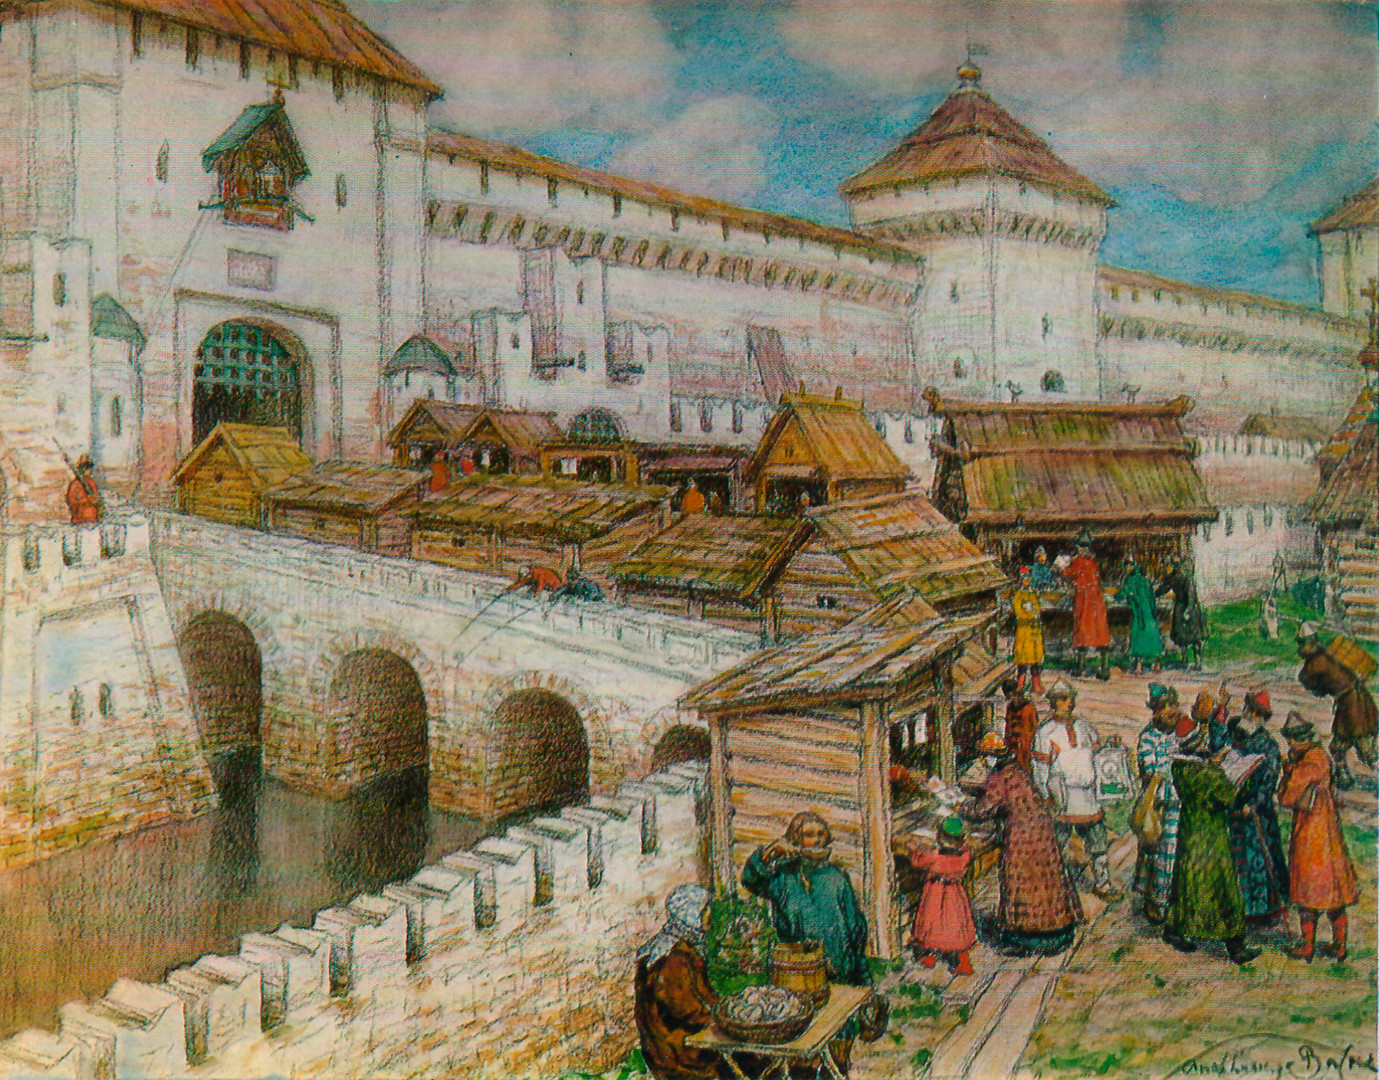 Bookstores on the Spassky Bridge in the 17 century.